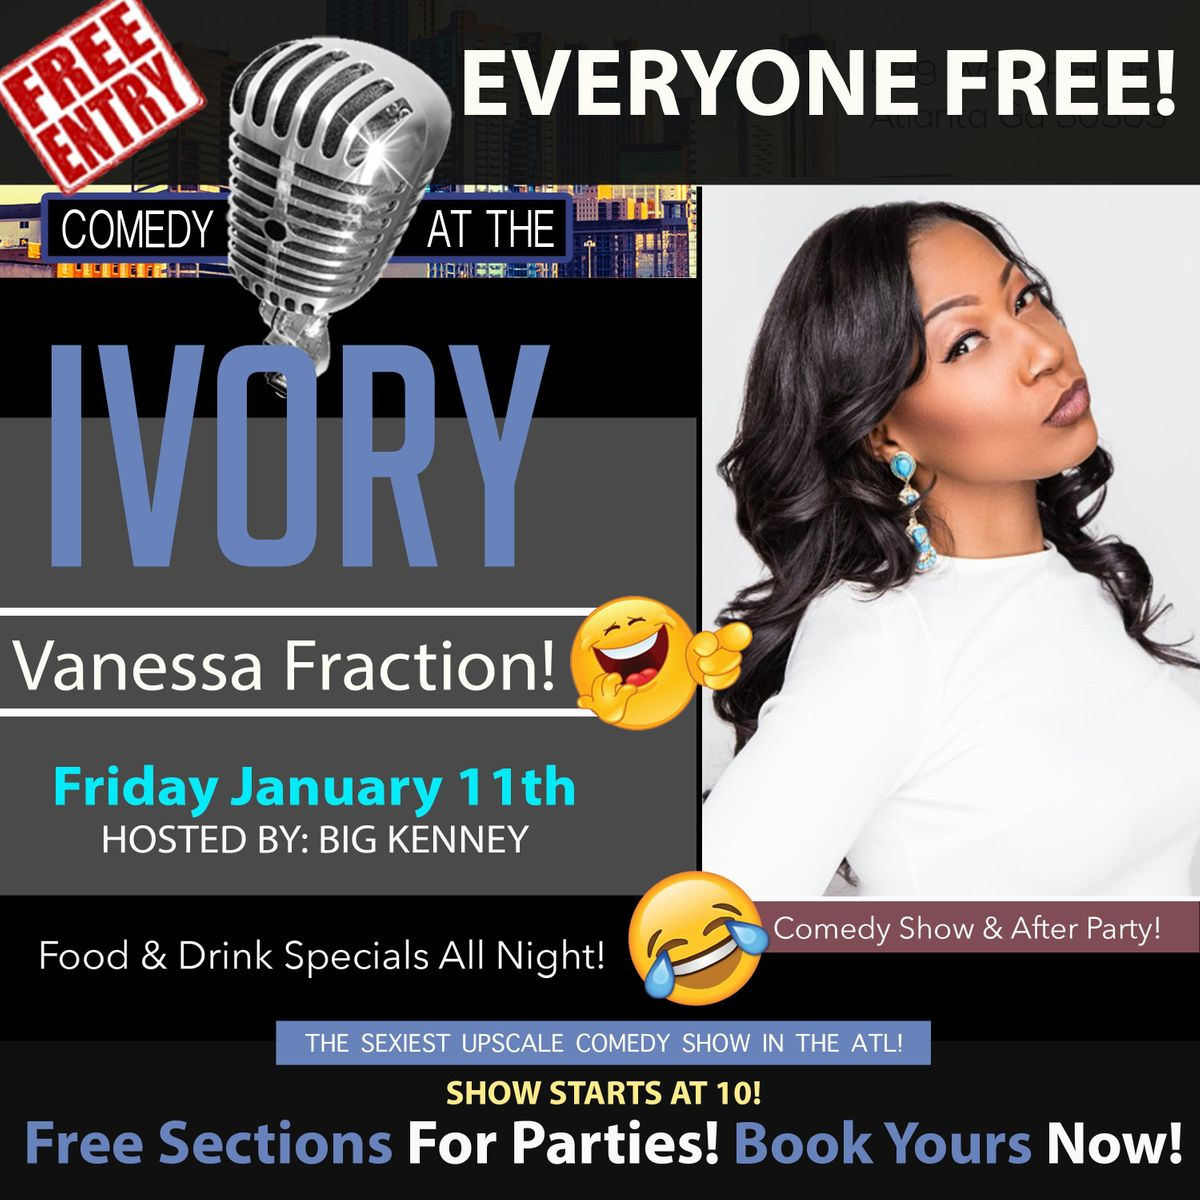 EVERYBODY FREE The Ivory Comedy Show & After Party